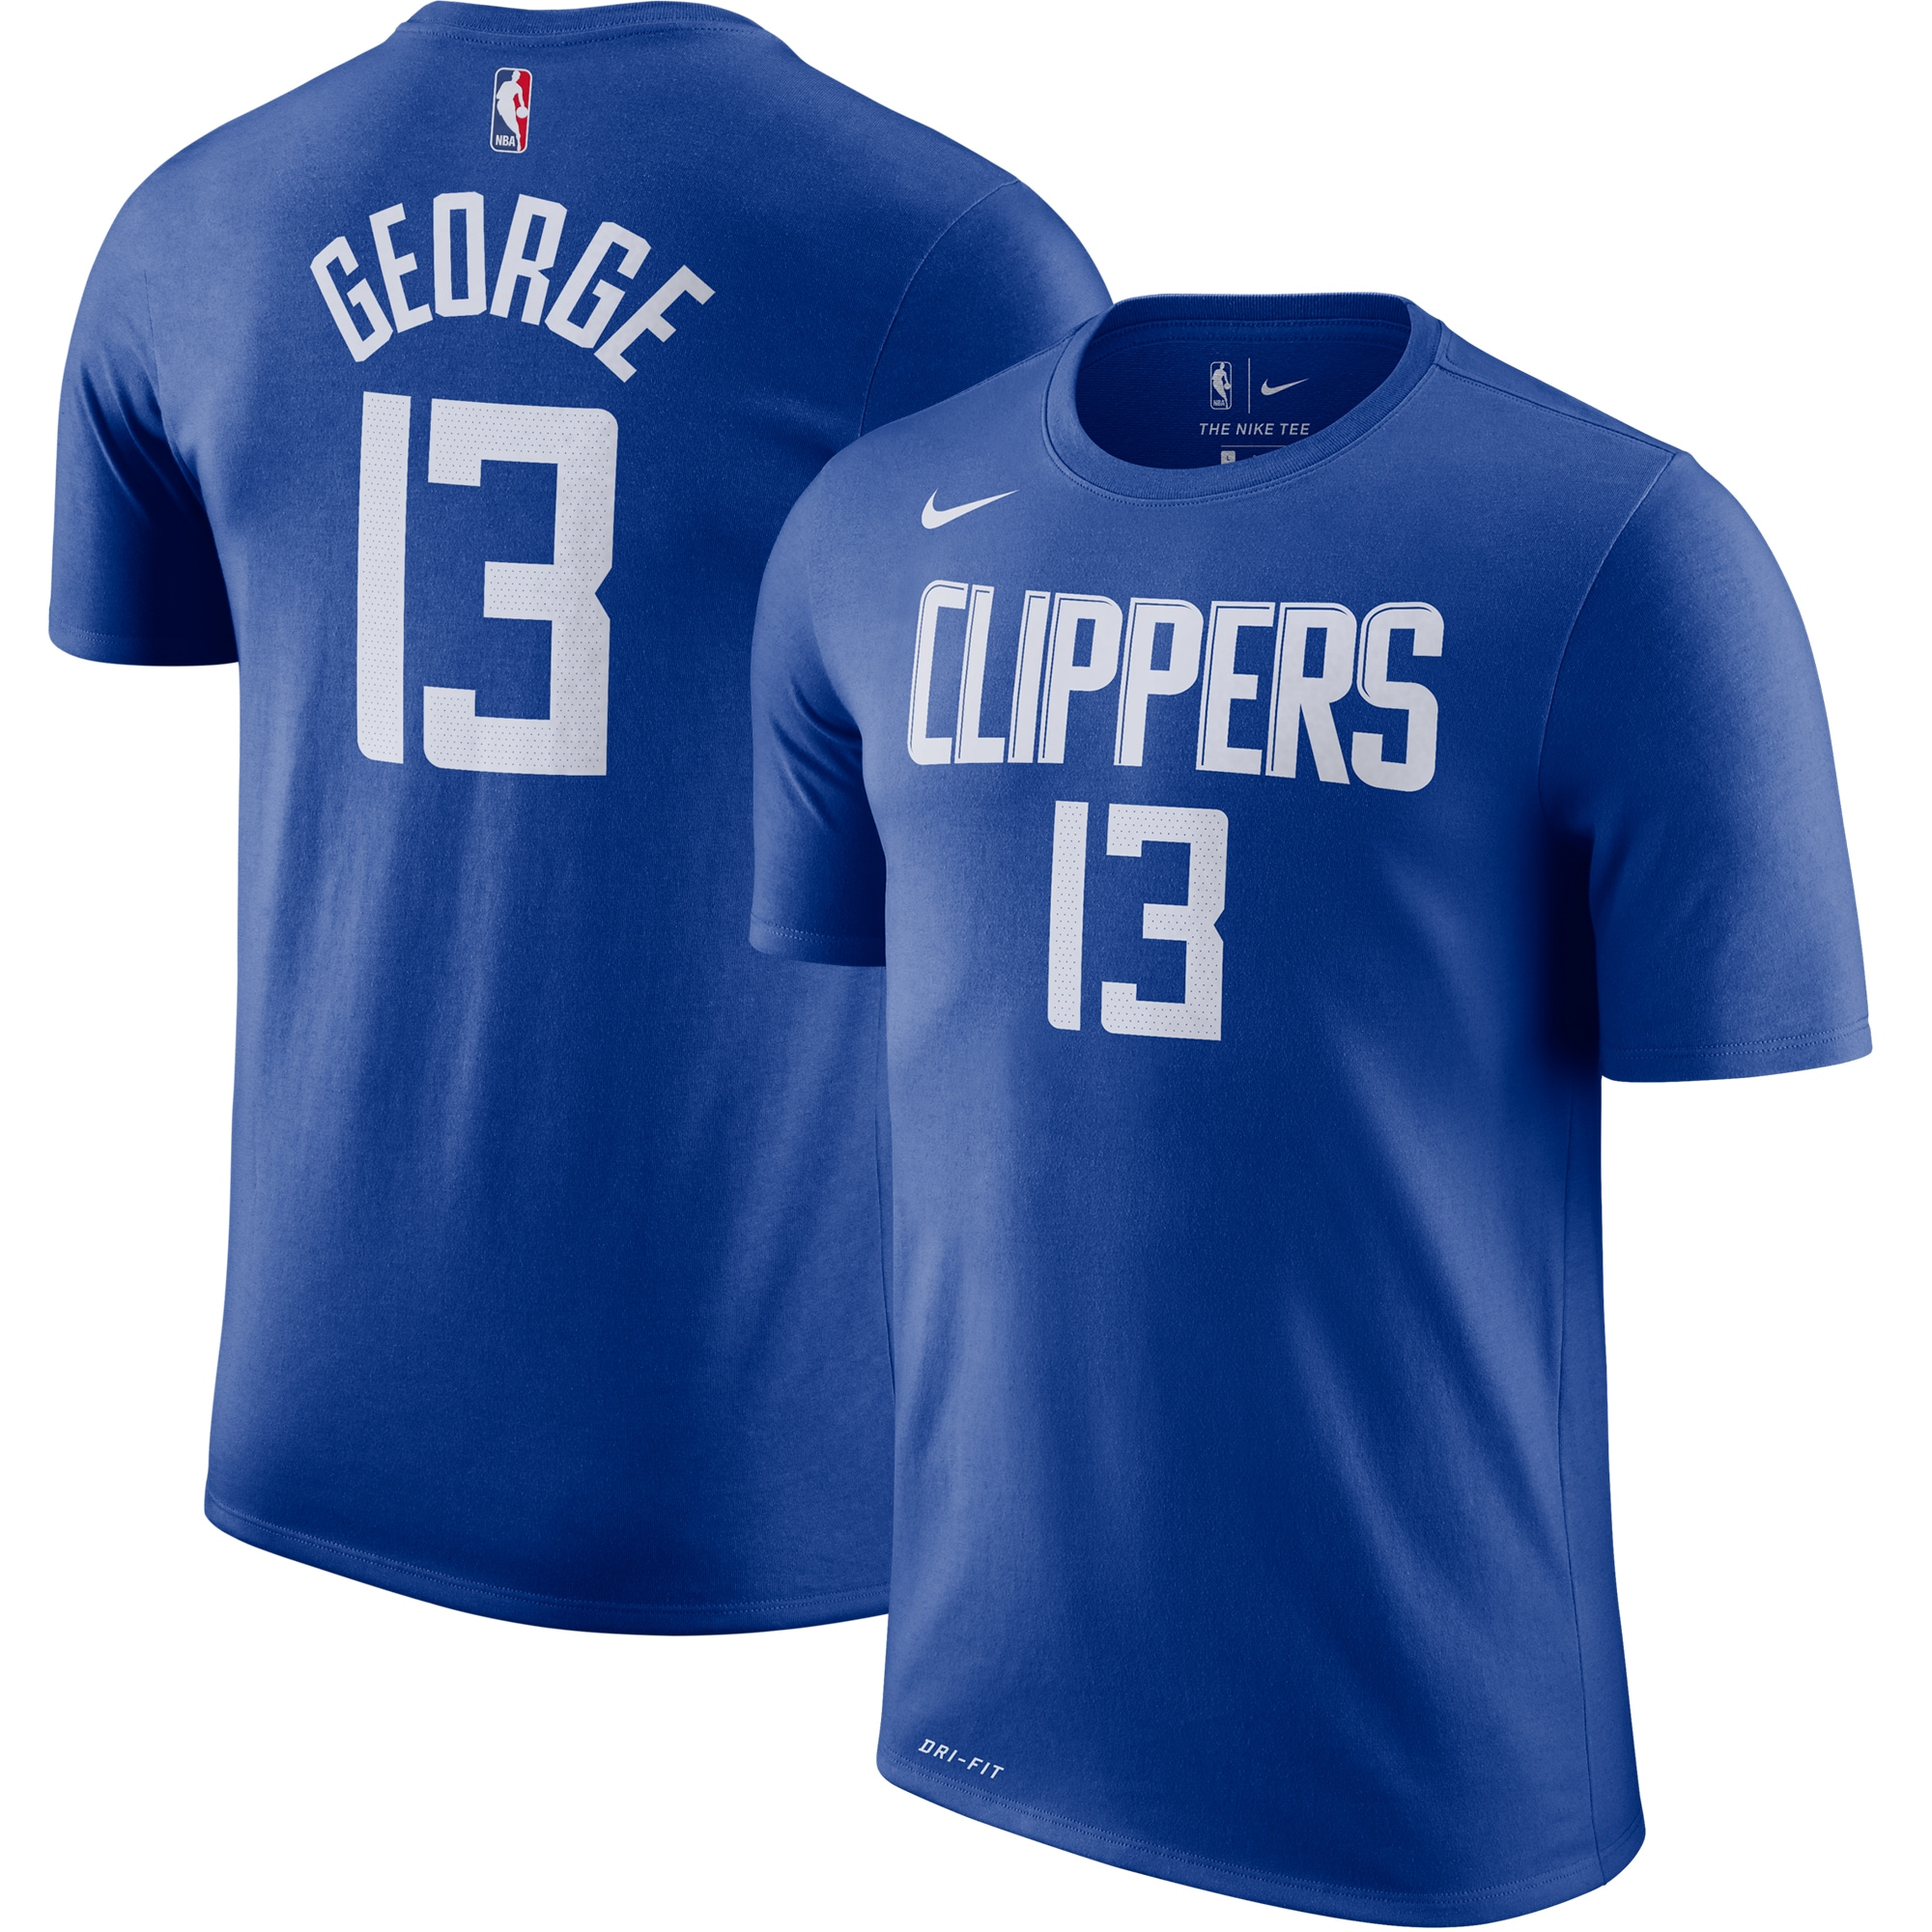 Paul George LA Clippers Nike 2019/2020 Name & Number Performance T-Shirt - Royal